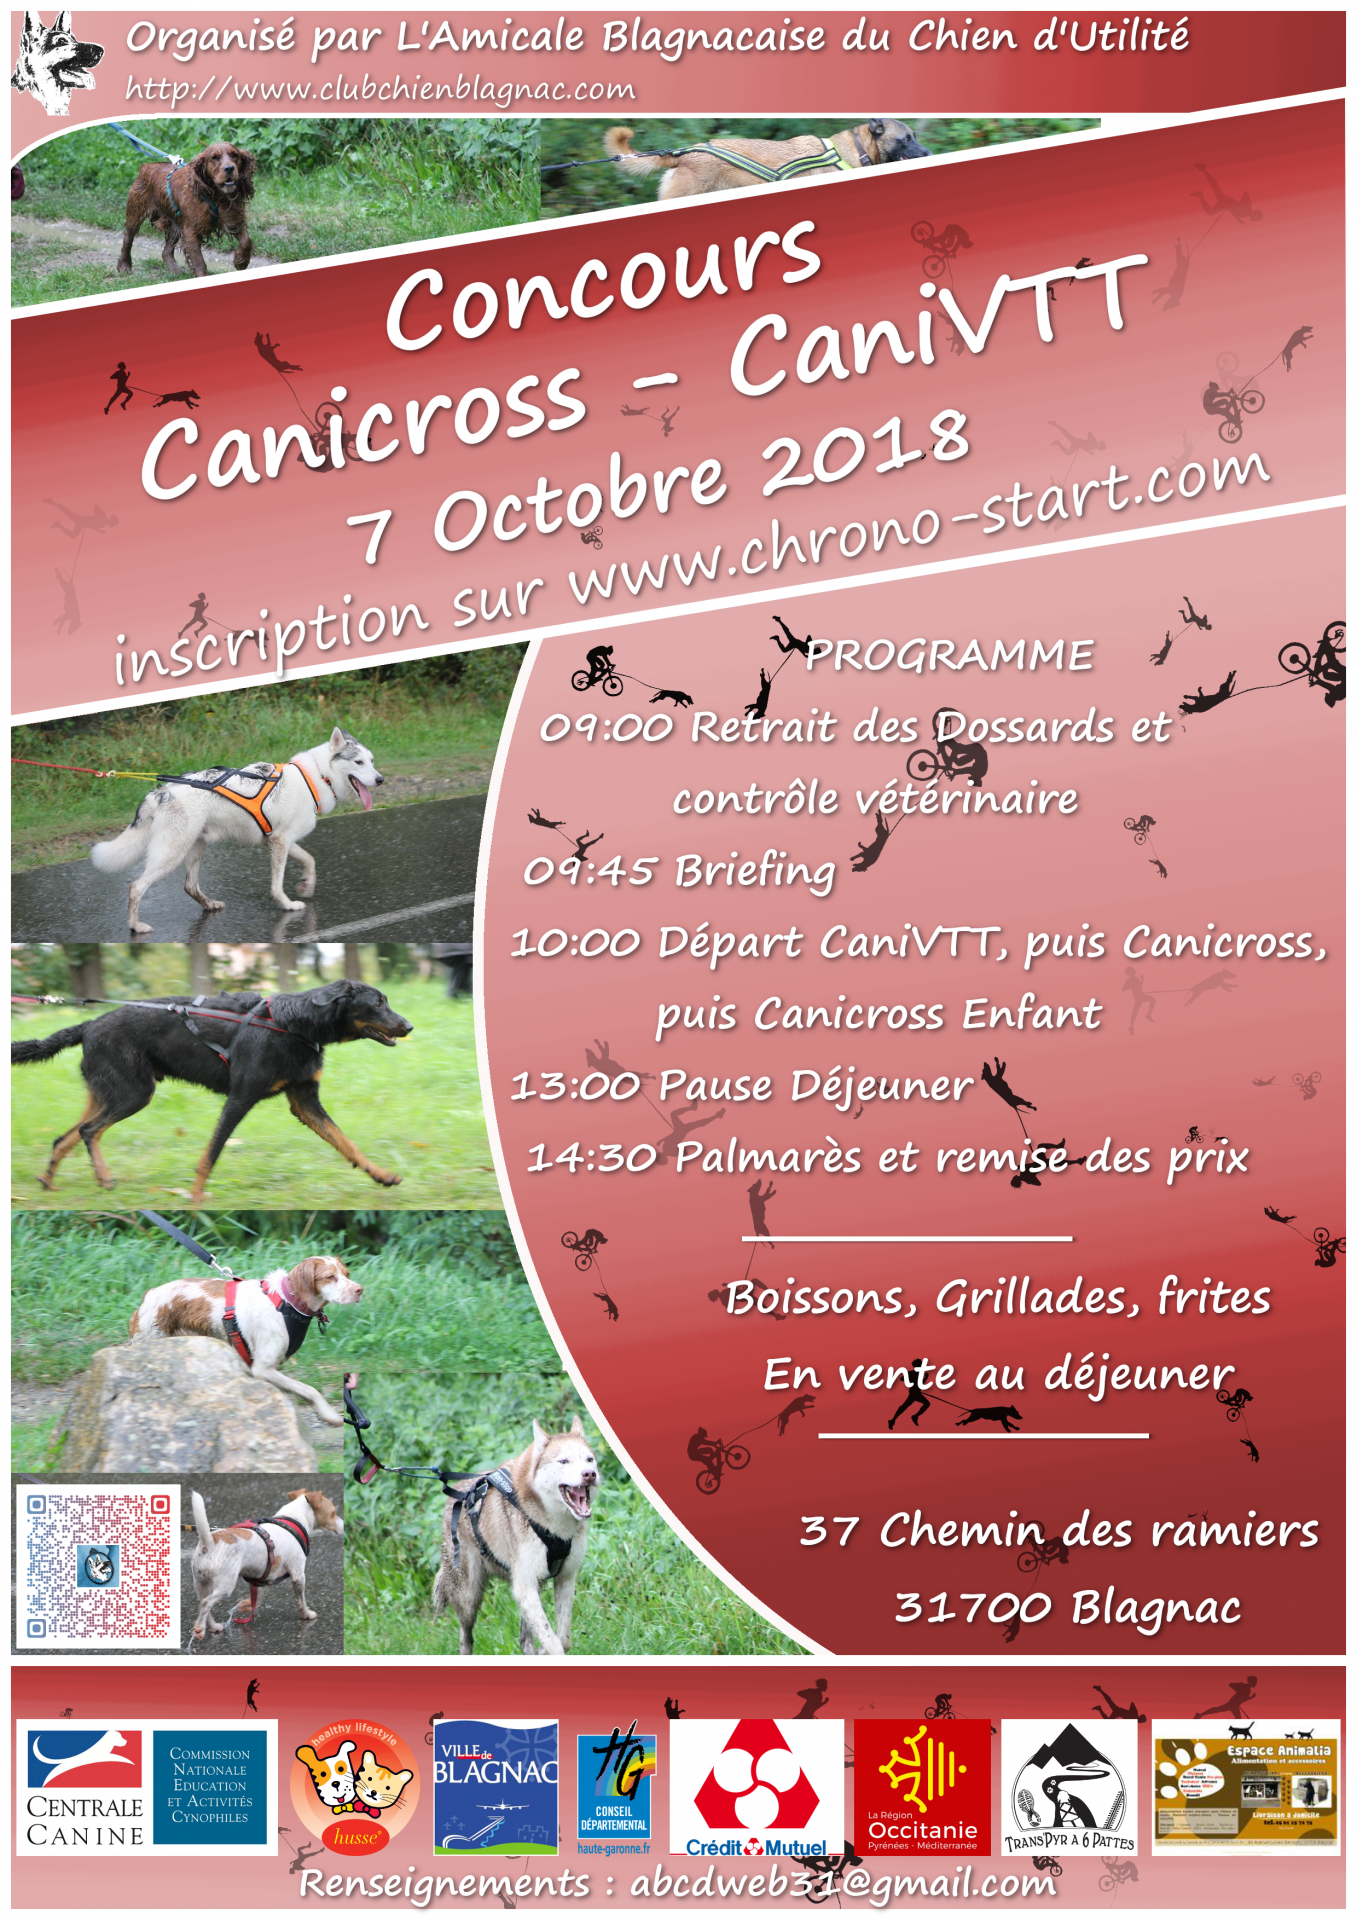 Concours Canicross